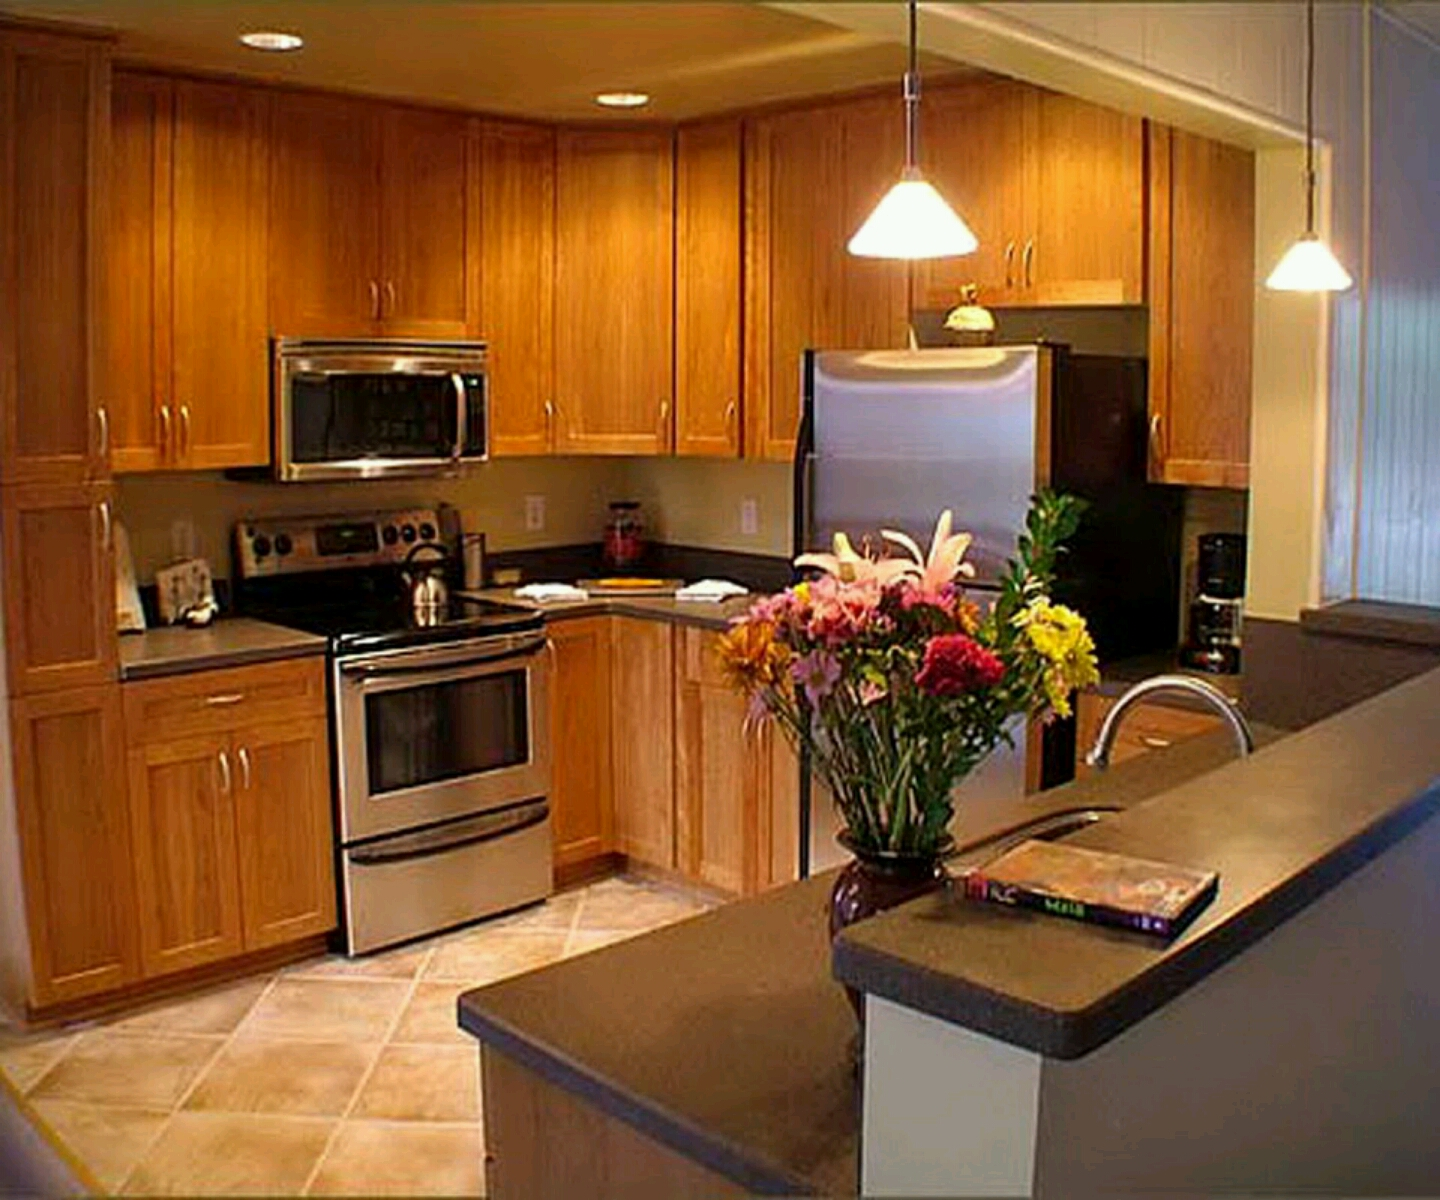 Contemporary wooden kitchen cabinets interior decorating for Kitchen design cabinets